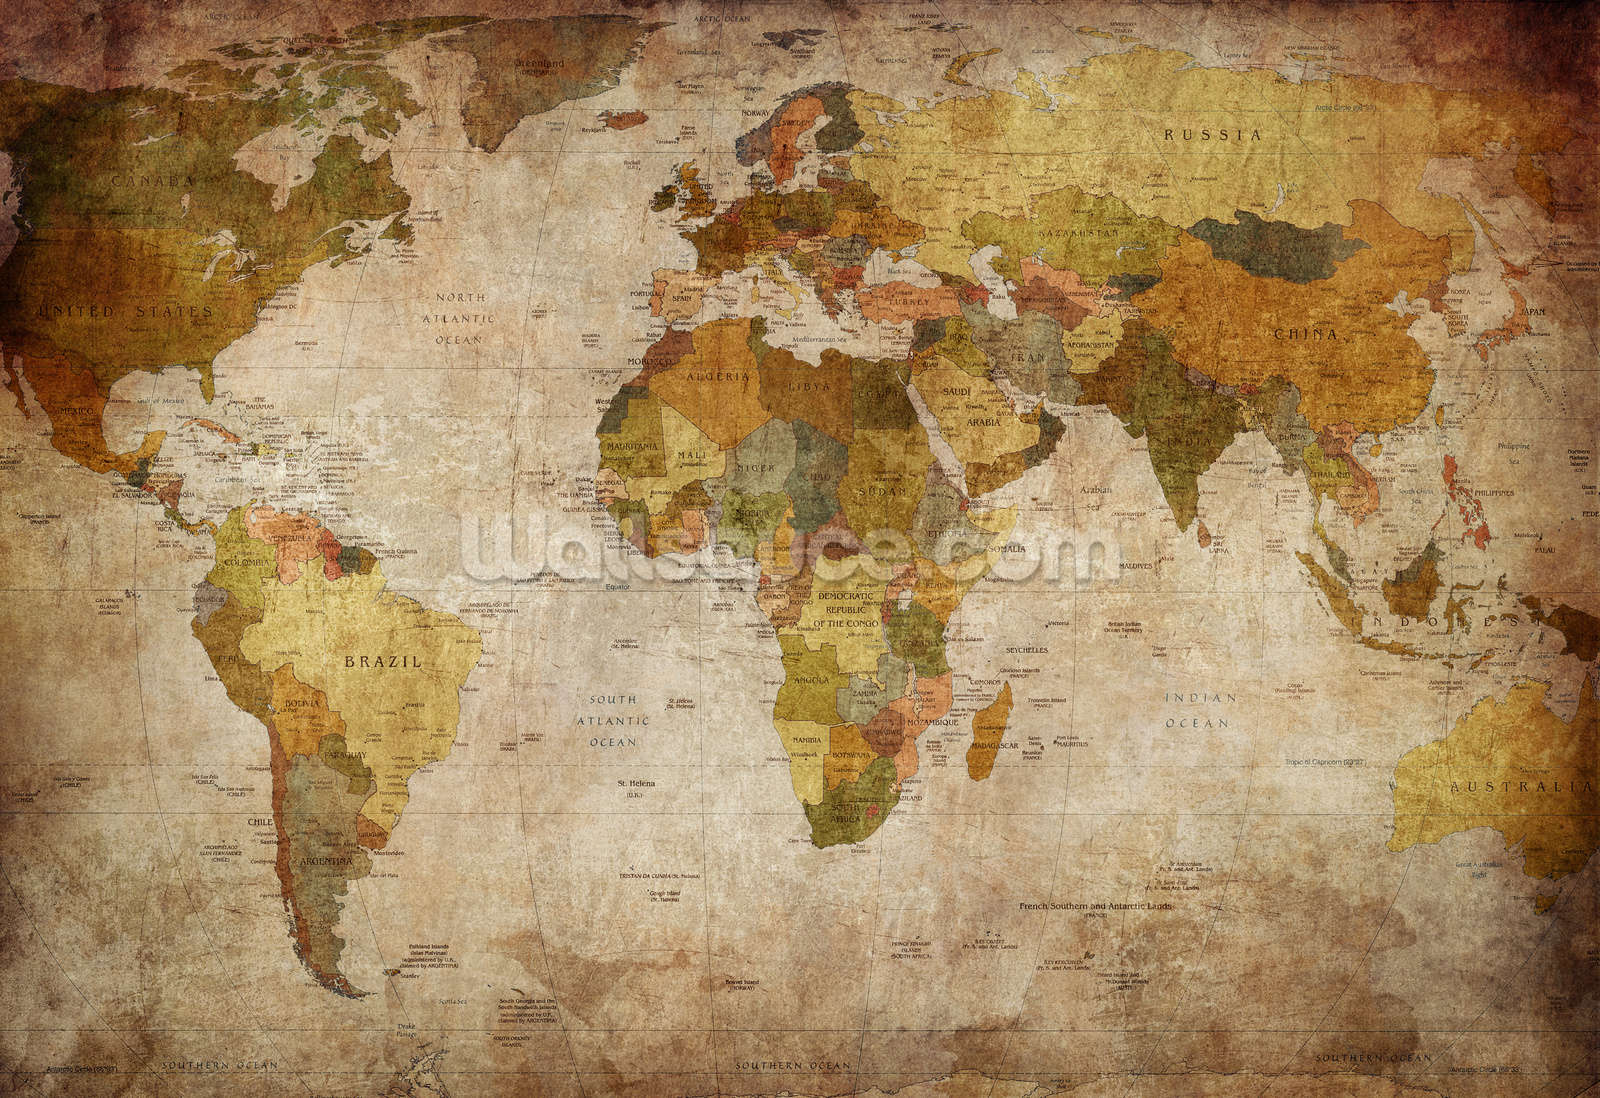 Old style world map wallpaper wall mural wallsauce europe old style world map wall mural photo wallpaper gumiabroncs Image collections